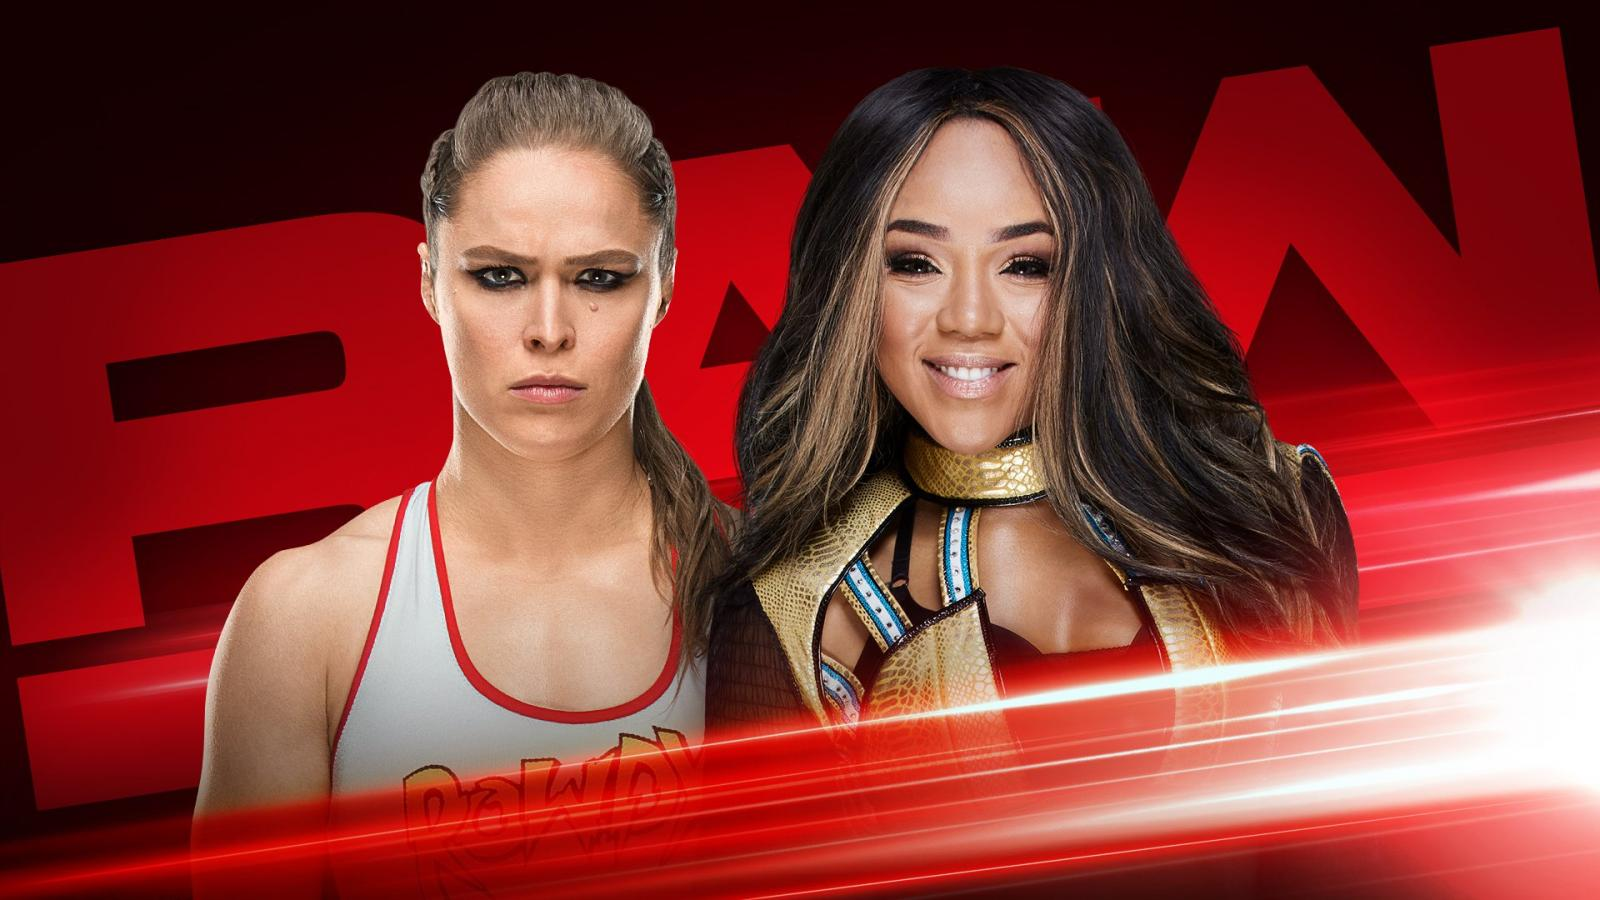 Ronda Rousey RAW In-Ring Debut - Ronda Rousey vs. Alicia Fox